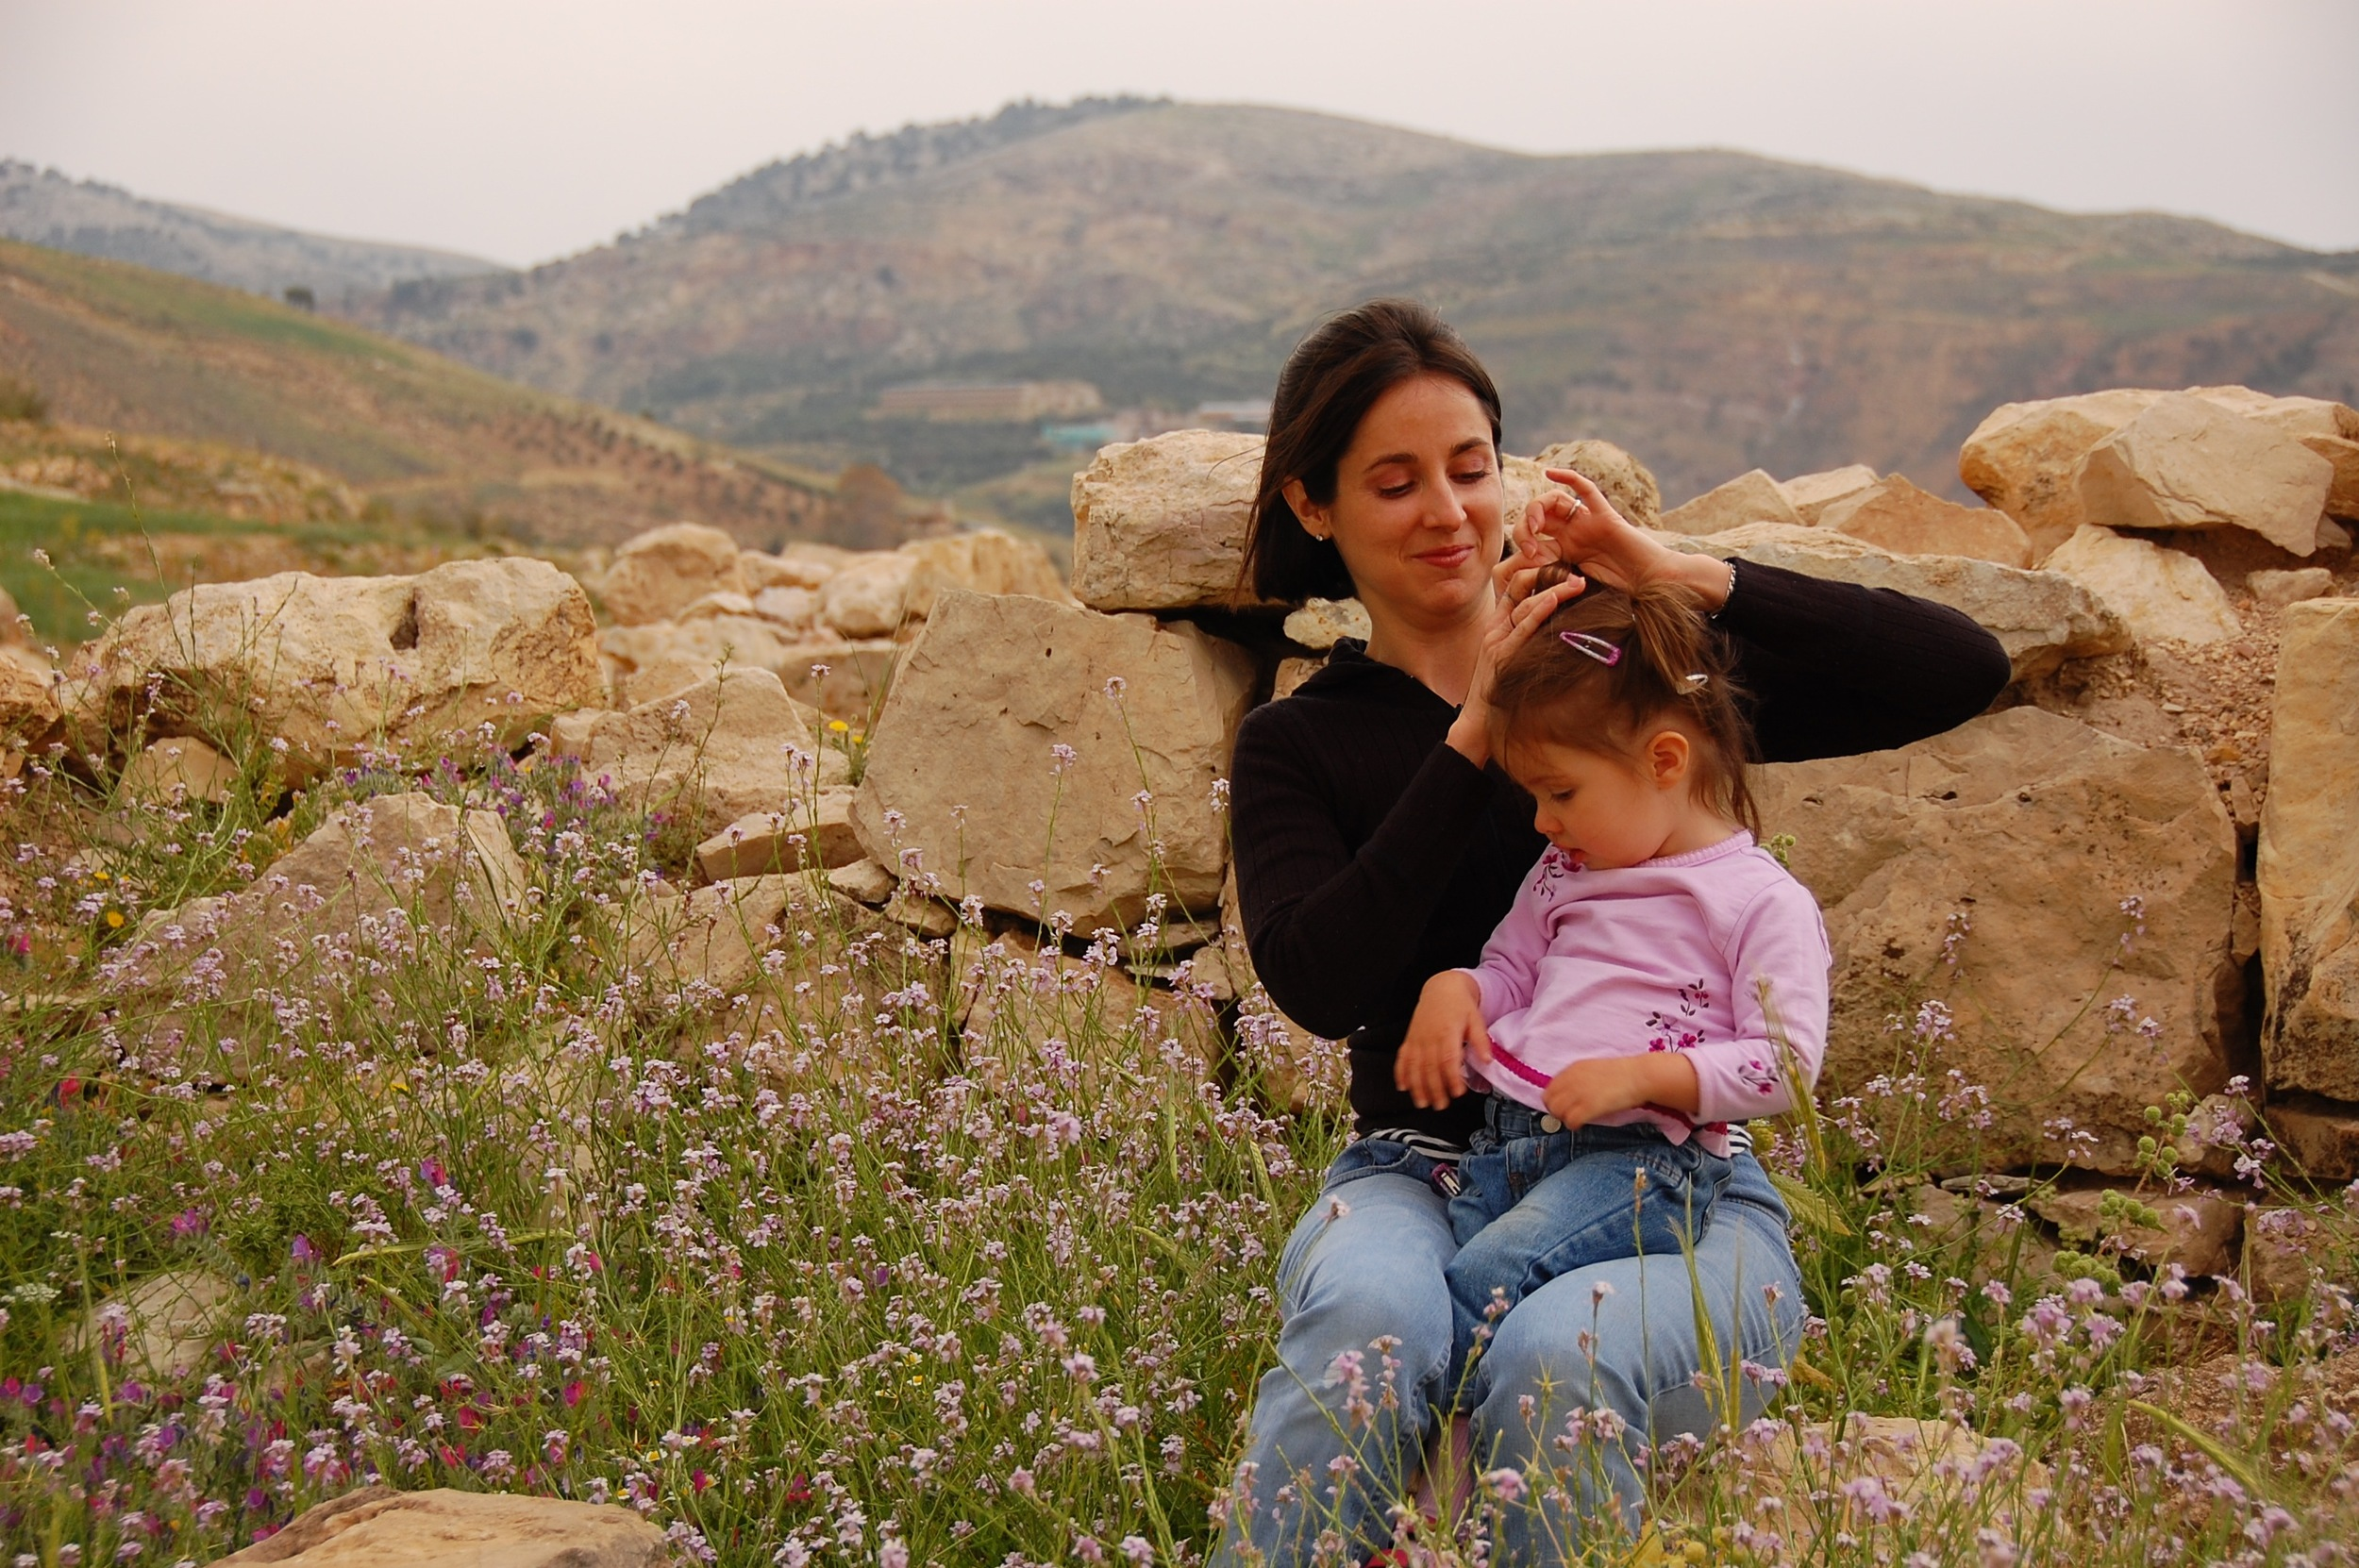 That looks really hard fixing that kid's hair, and I would like to help, but later you will thank me for backing up further to get more wildflowers in the shot. (Wadi al-Sir, Jordan; Apr 2009)